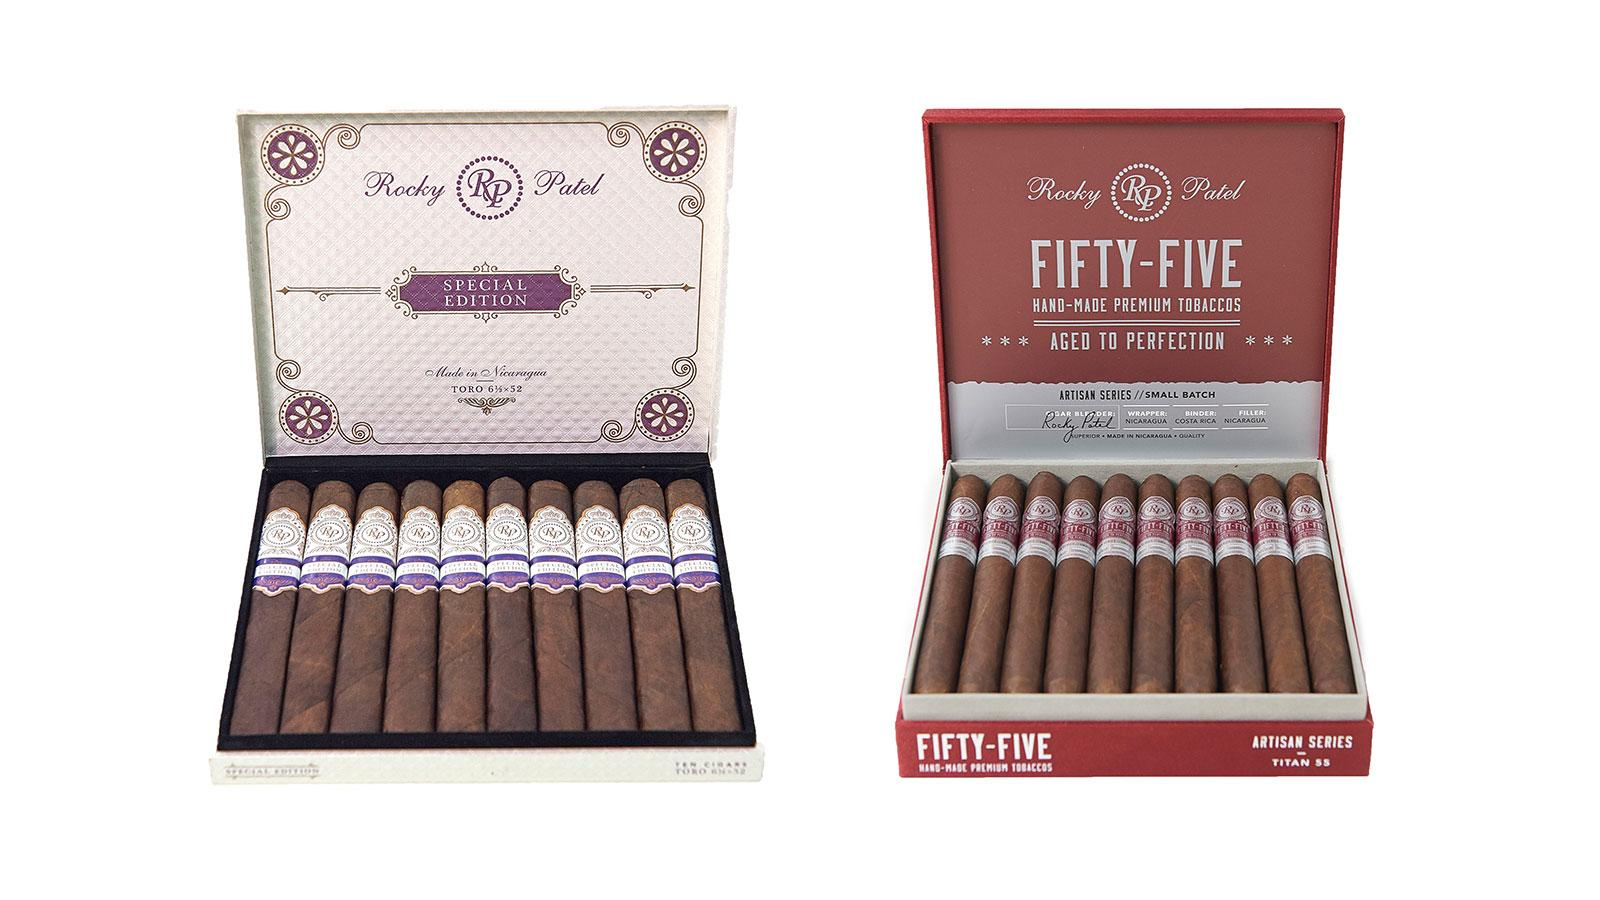 New Rocky Patel Cigars To Debut At IPCPR